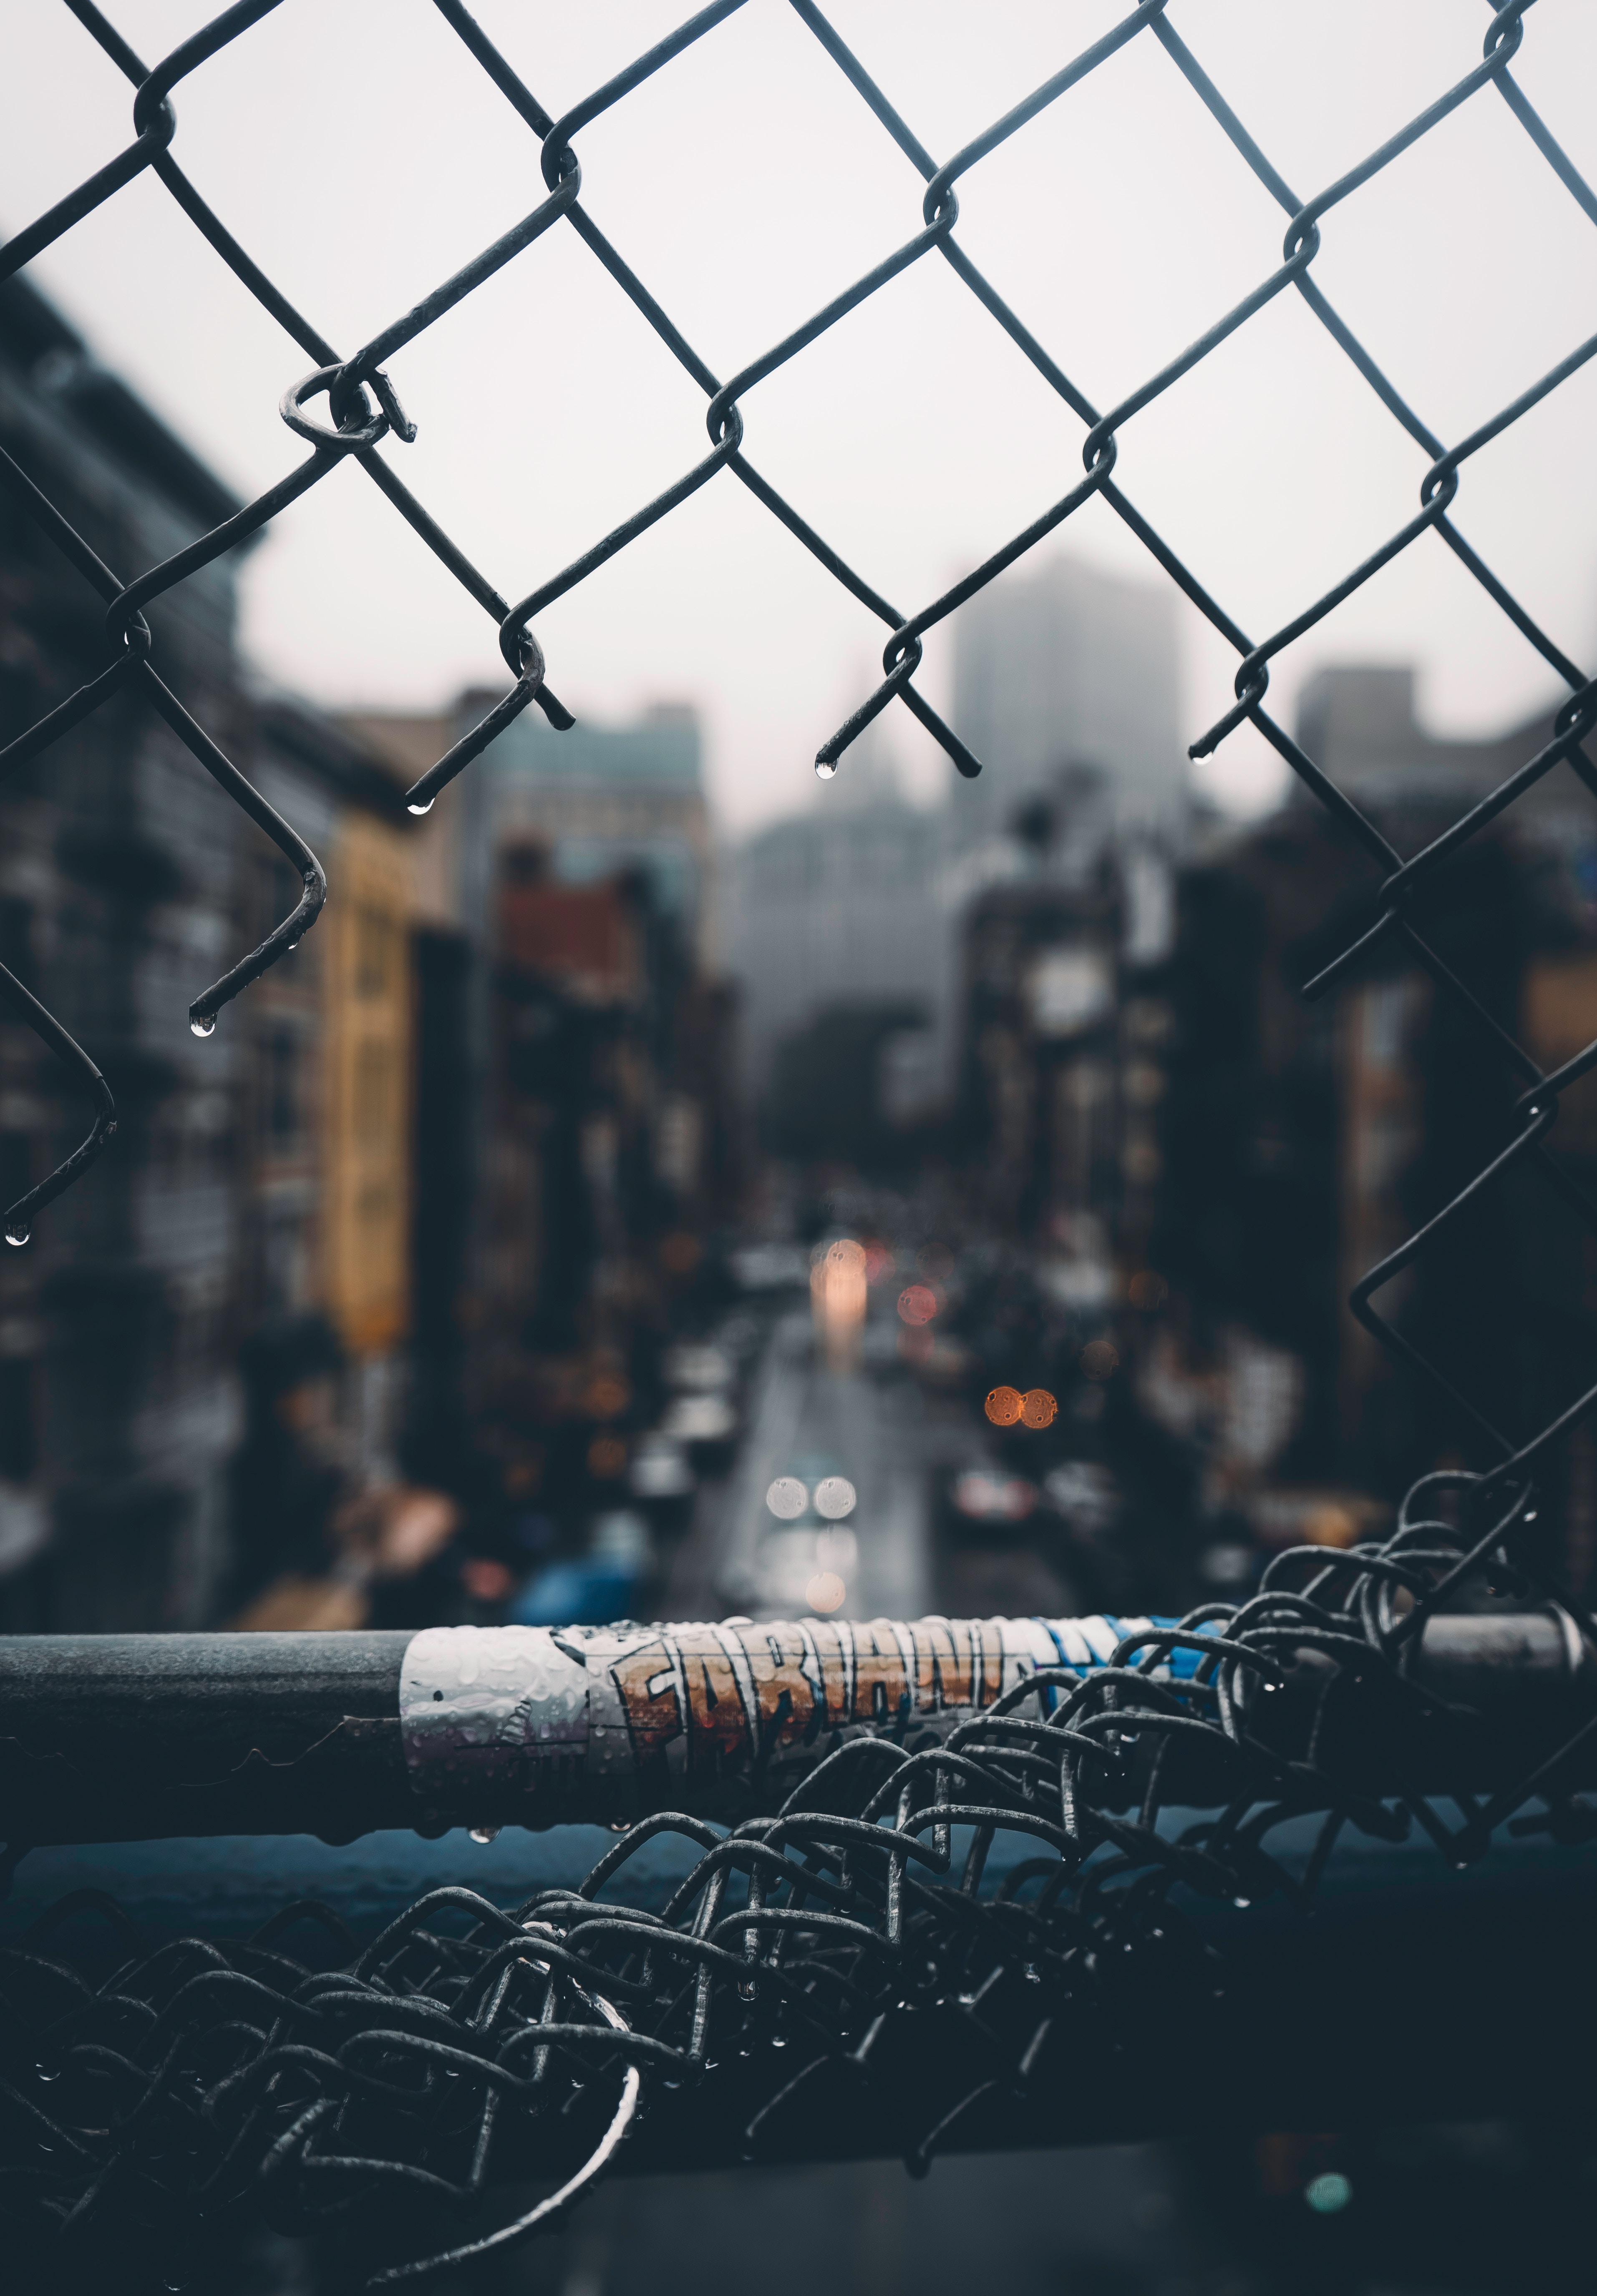 127052 download wallpaper Miscellanea, Miscellaneous, Fence, Grid, Hole, Rain, City, Blur, Smooth screensavers and pictures for free